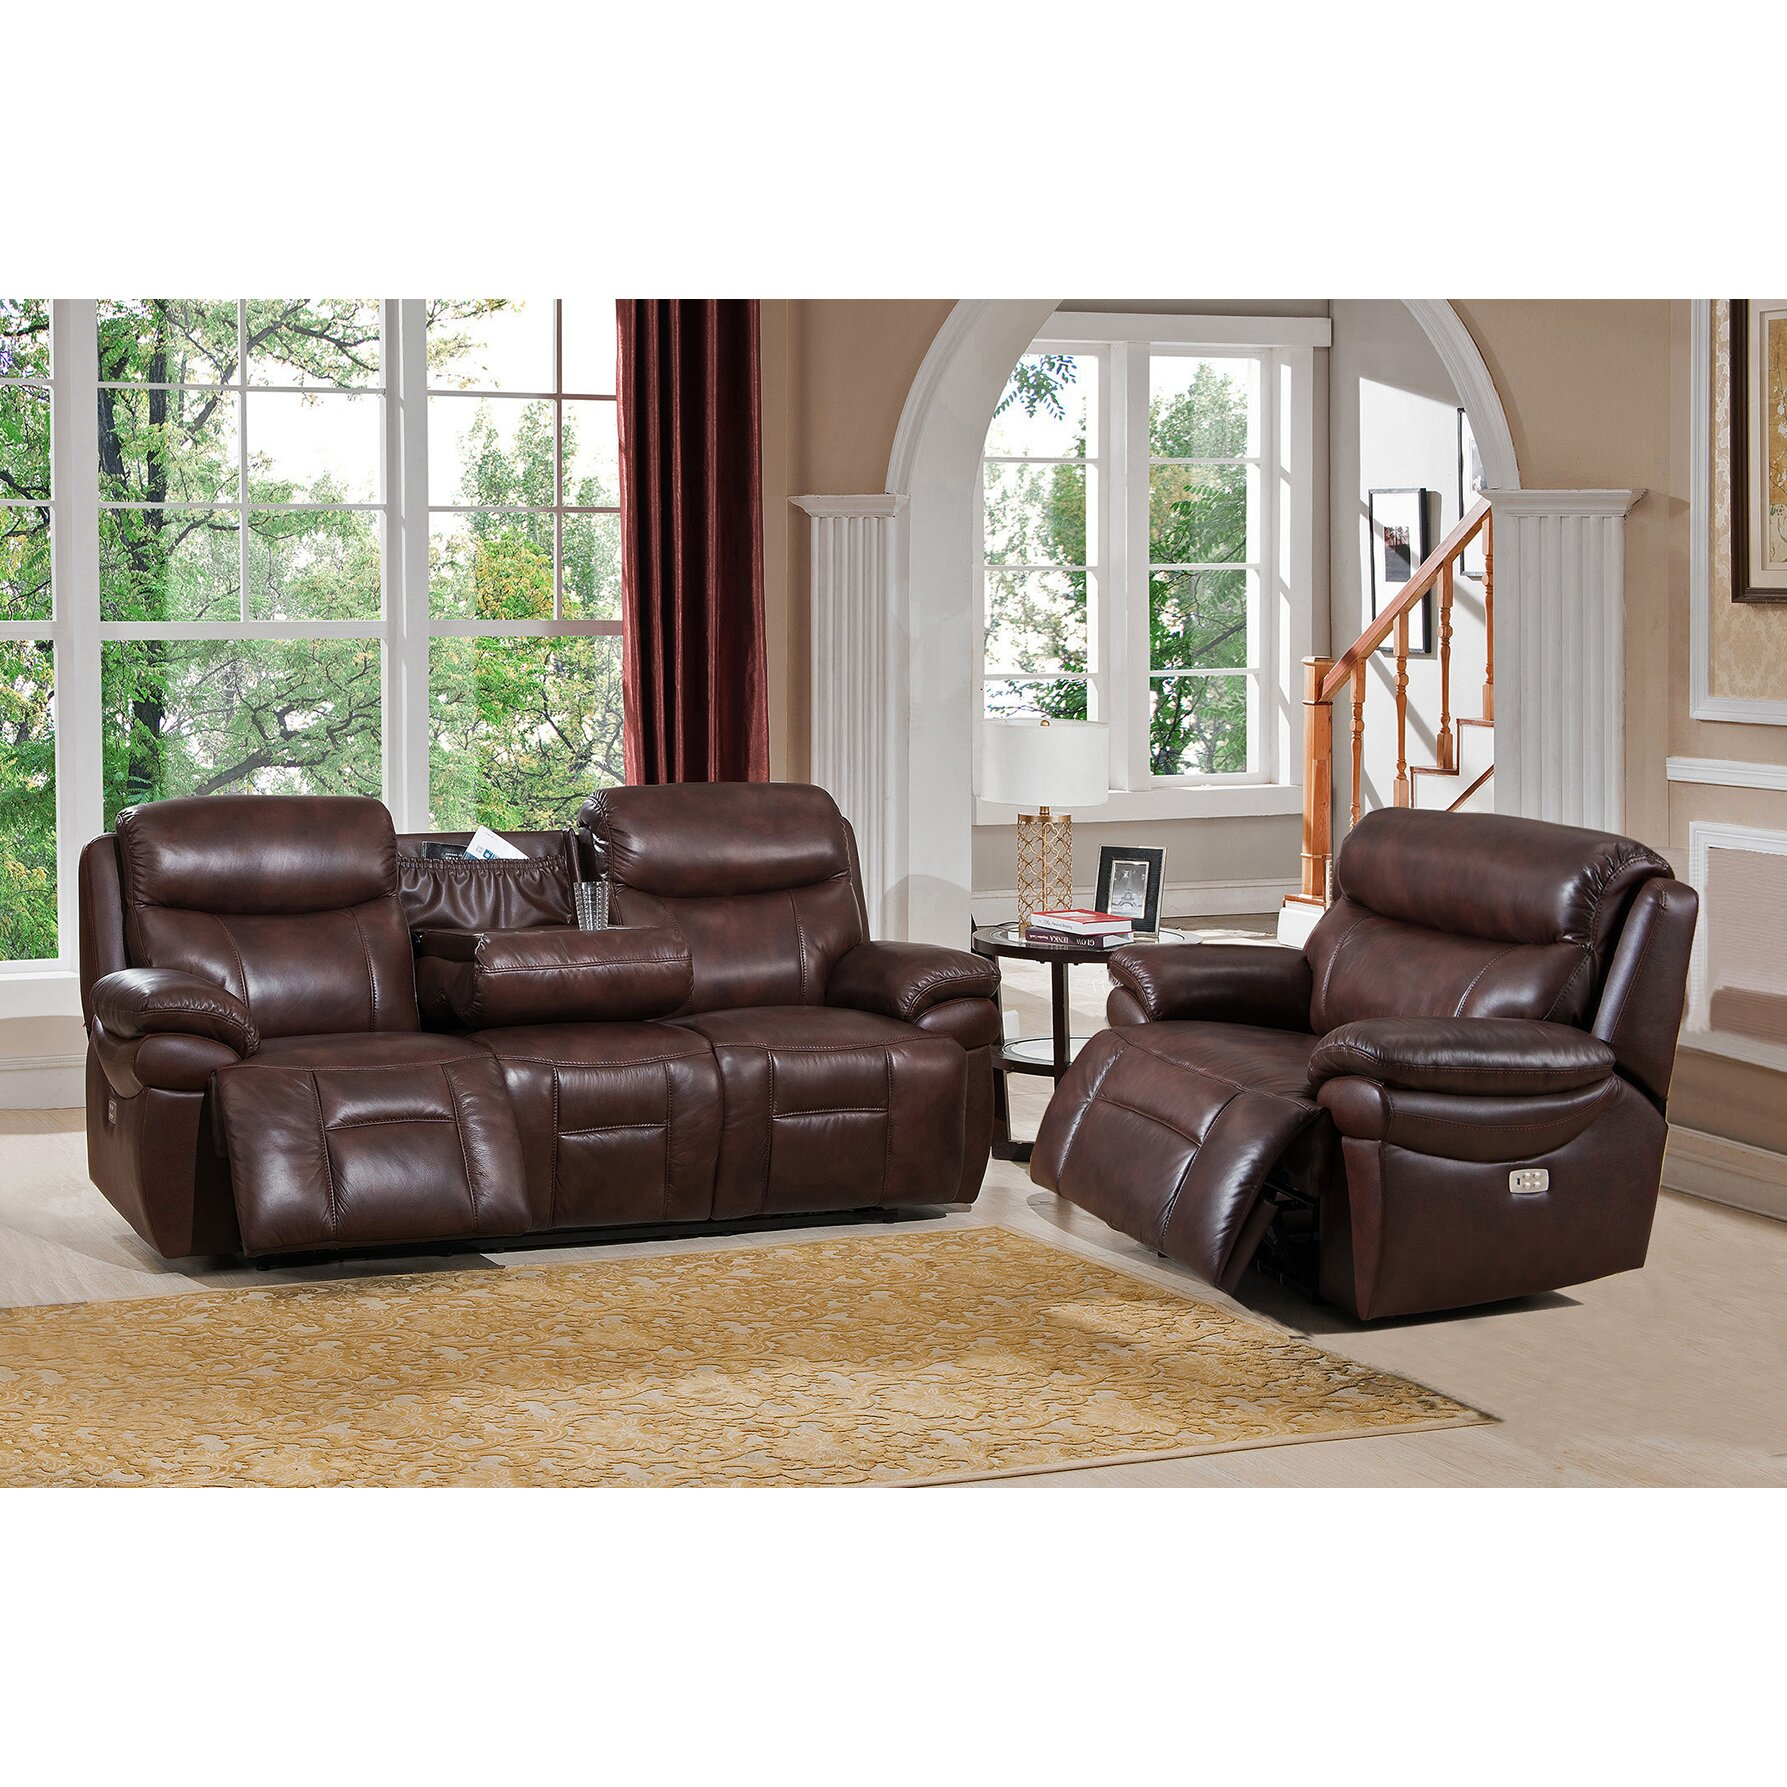 amax sanford 2 piece leather power reclining living room set with usb ports power headrests. Black Bedroom Furniture Sets. Home Design Ideas